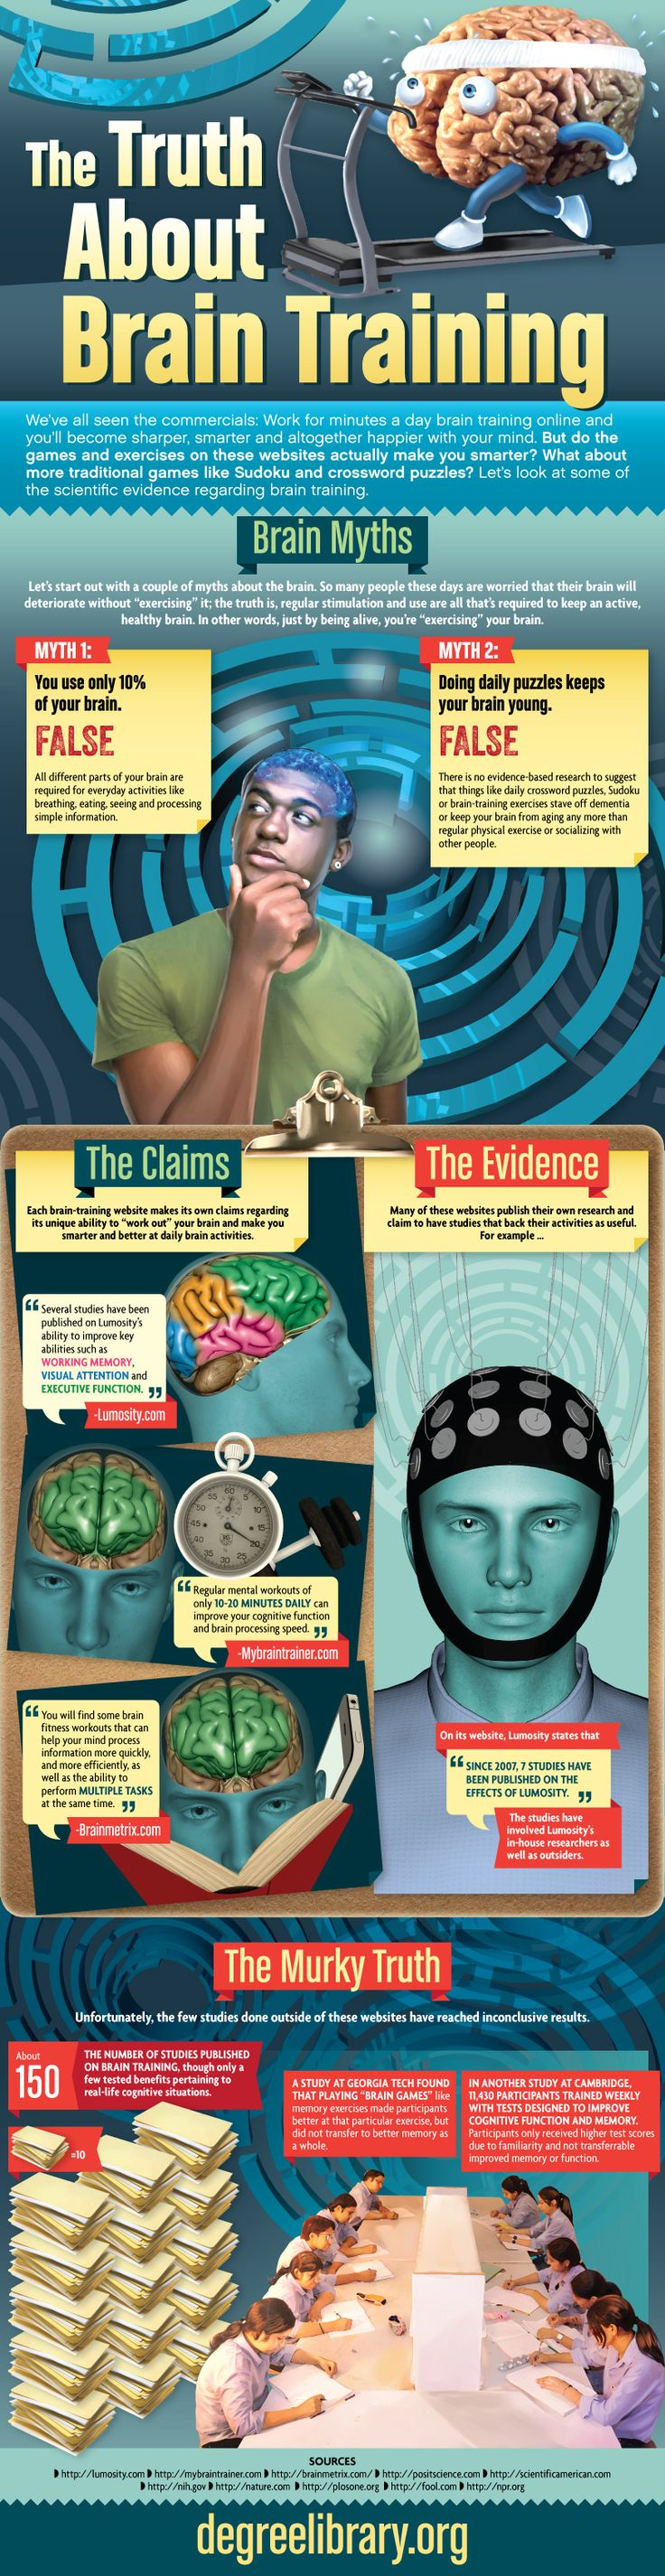 The Truth About Brain Training Infographic - http://elearninginfographics.com/truth-brain-training-infographic/